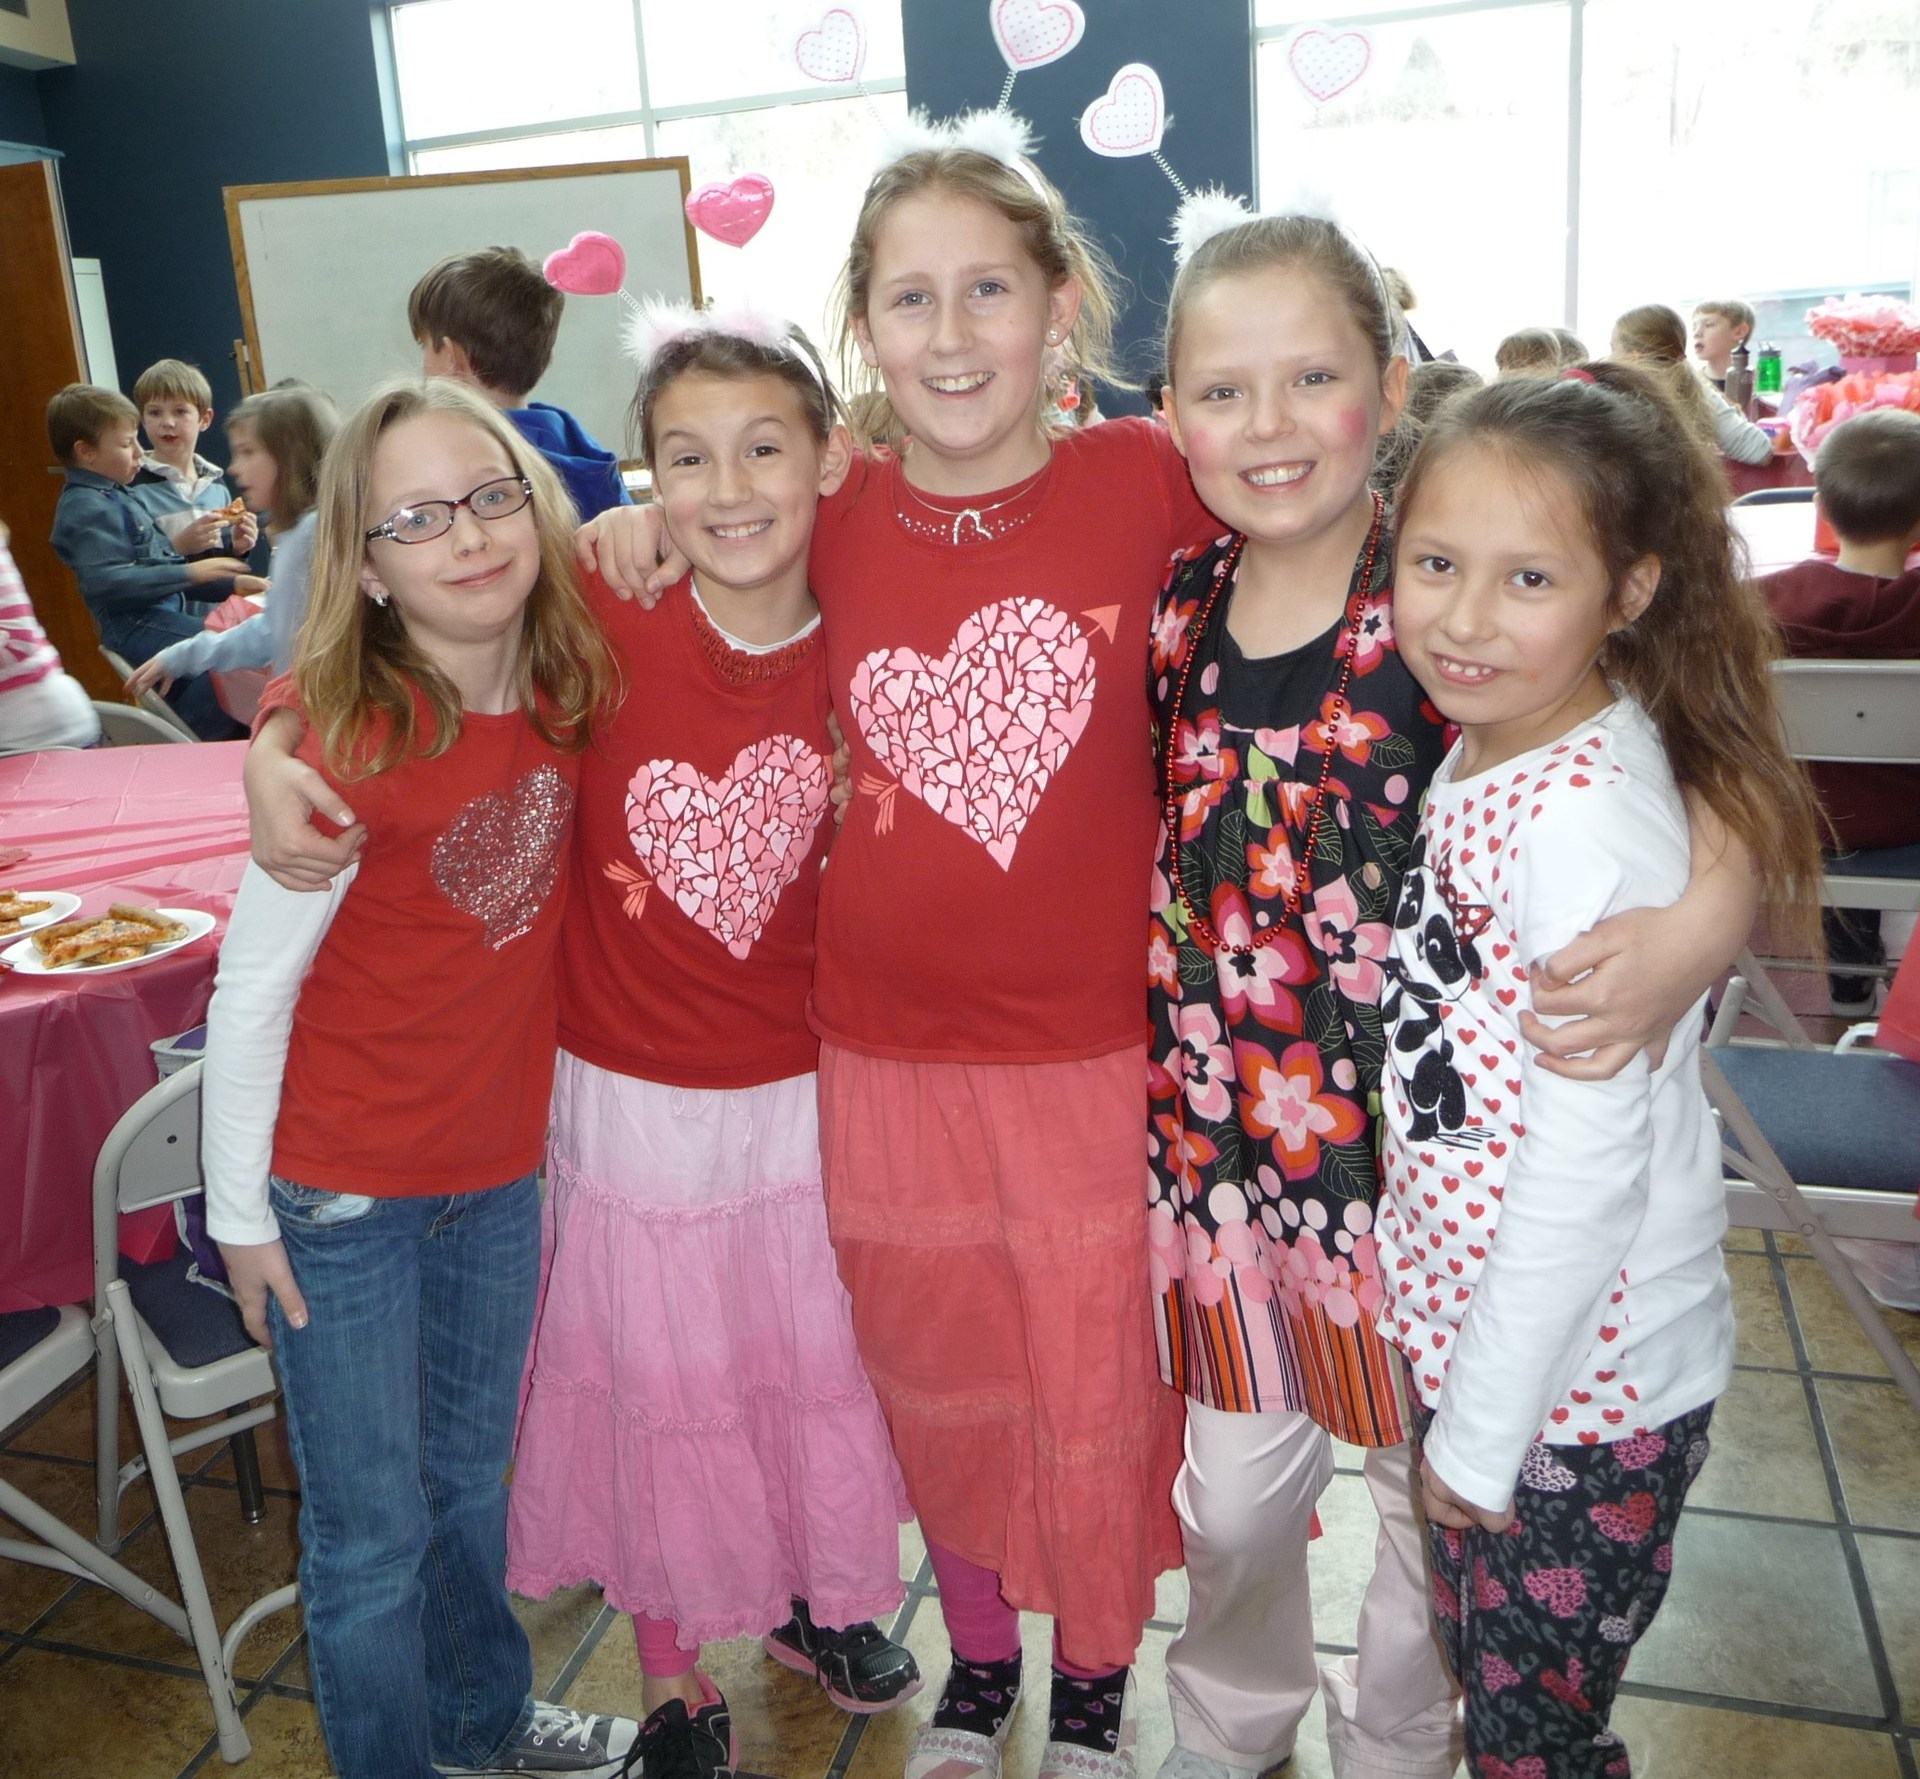 Students posing for a picture on Valentine's Day.